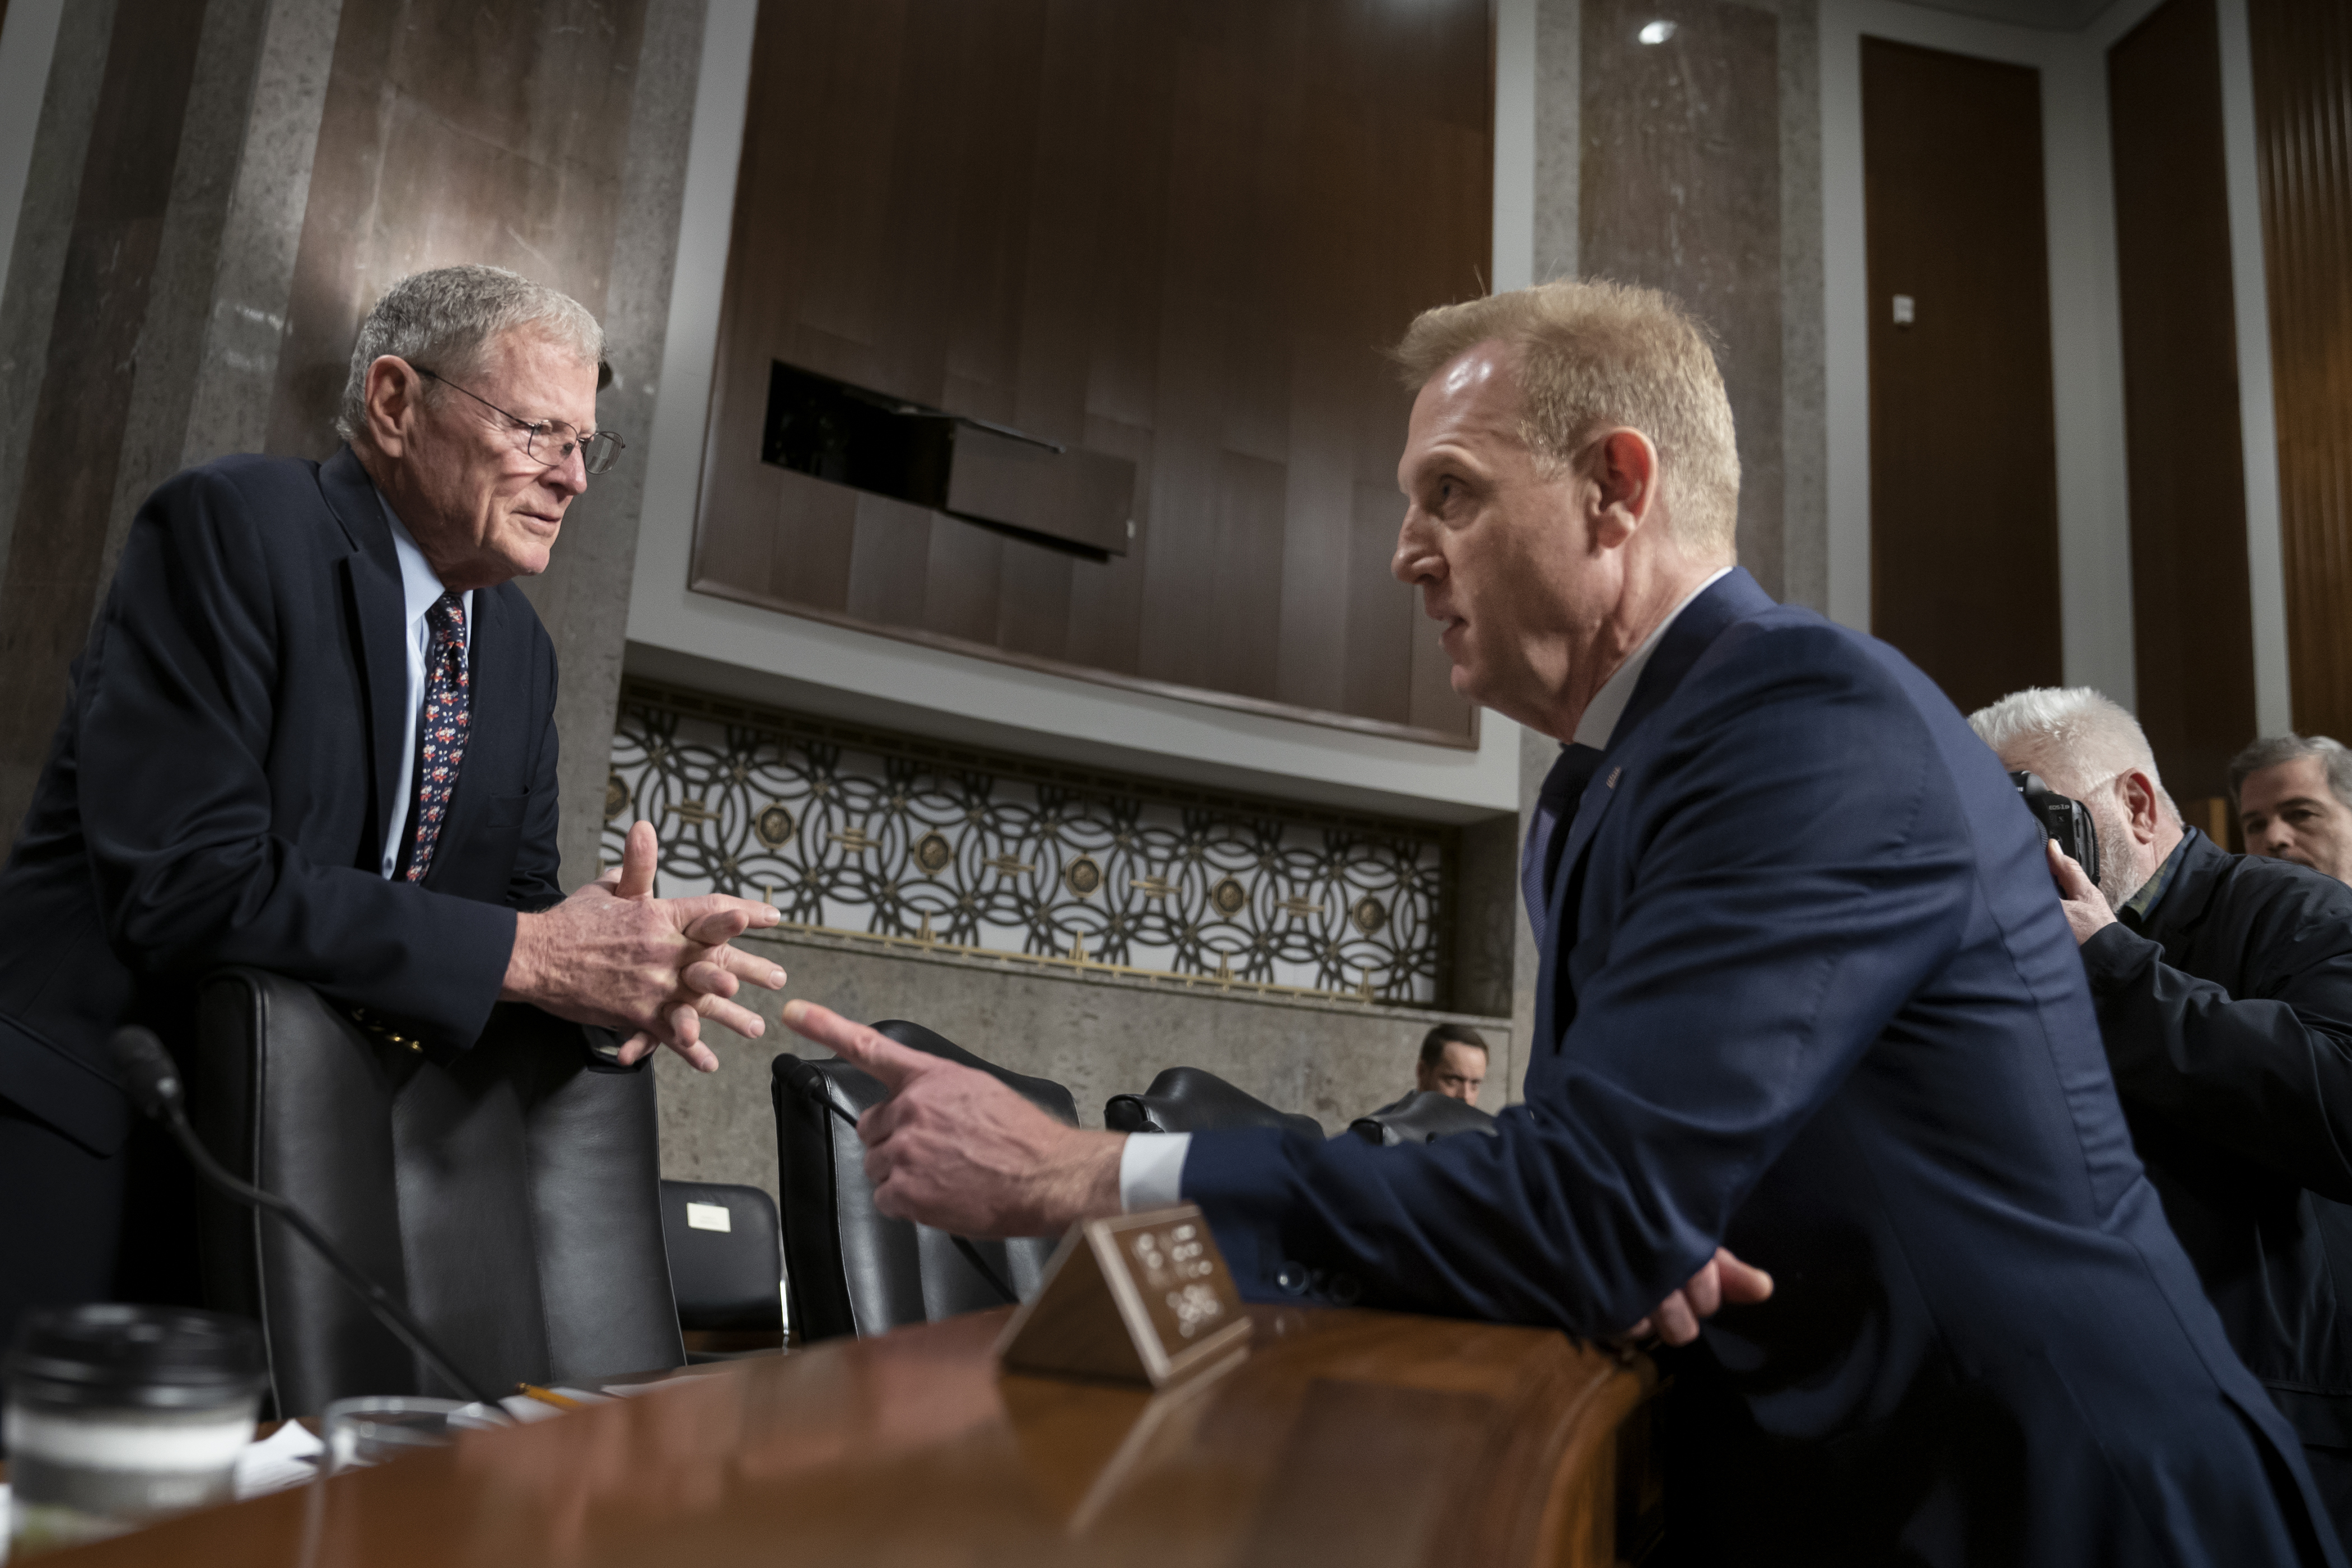 Senate Armed Services Committee Chairman Jim Inhofe, R-Okla., left, welcomes Acting Defense Secretary Patrick Shanahan to testify on the Department of Defense budget, on Capitol Hill in Washington, Thursday, March 14, 2019. (AP Photo/J. Scott Applewhite)